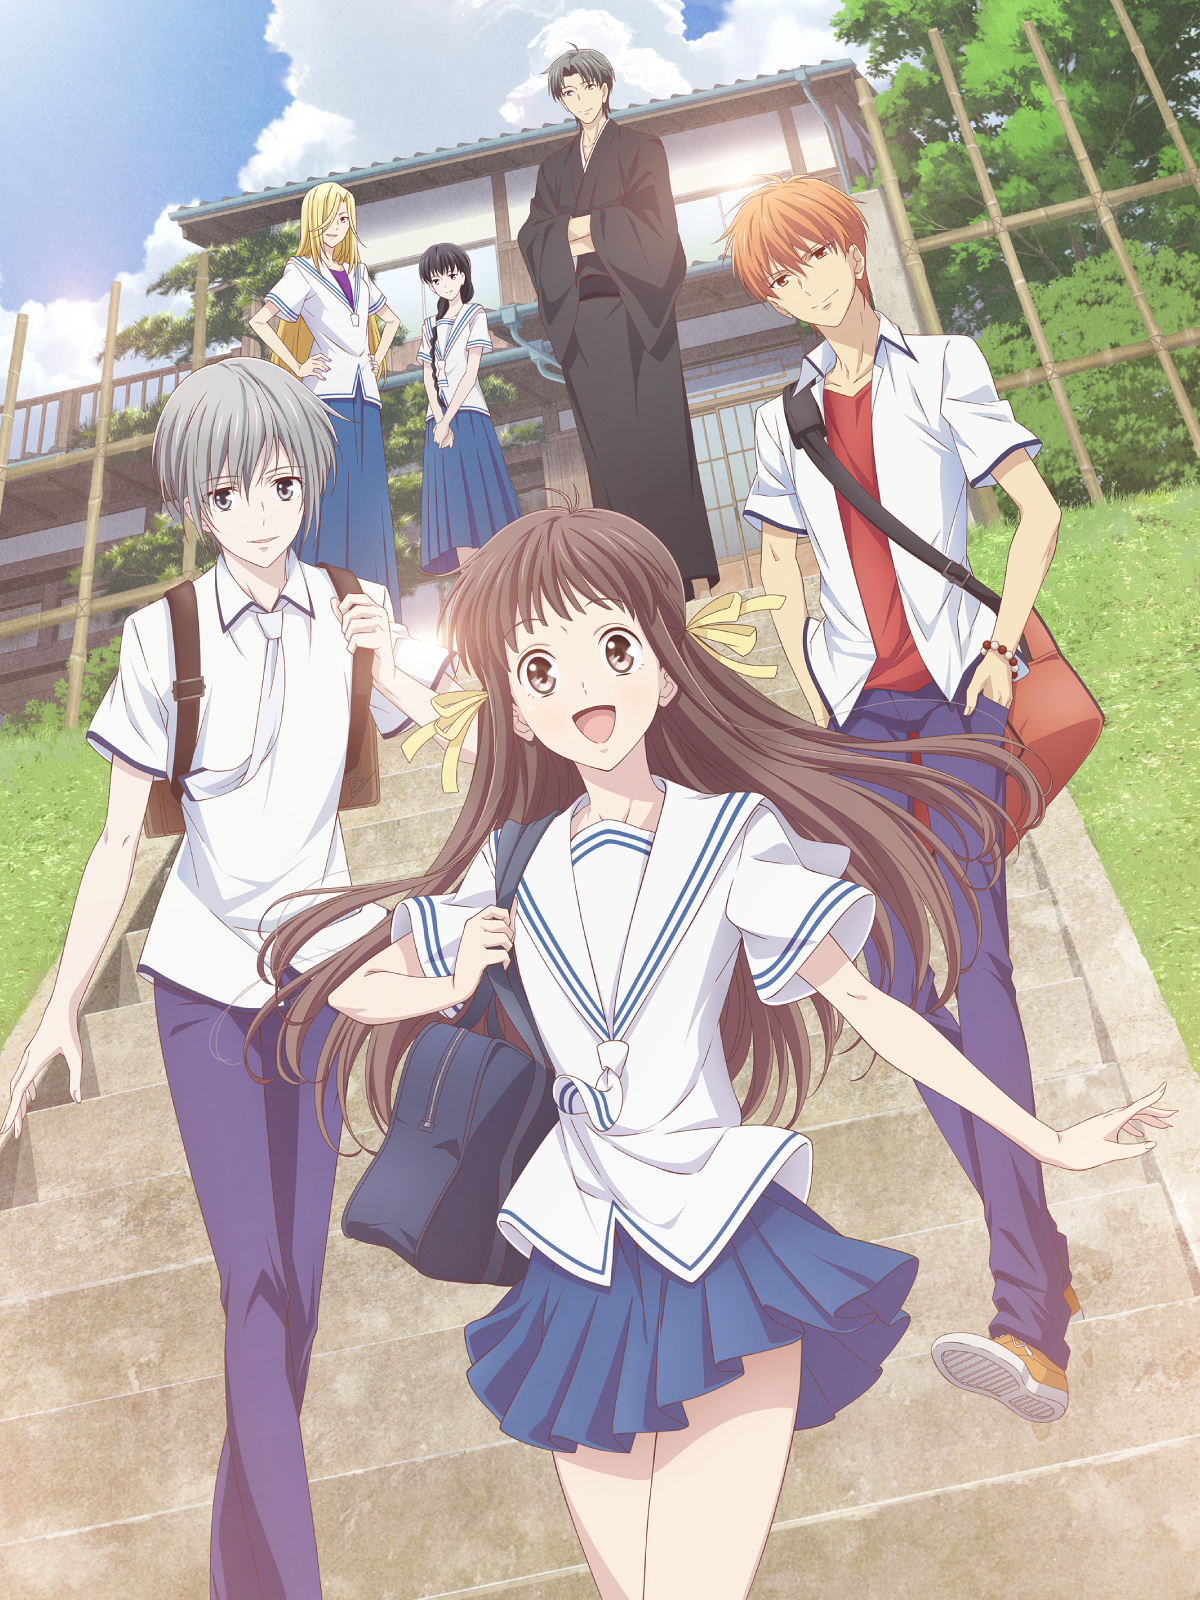 Image result for Fruits Basket manga poster